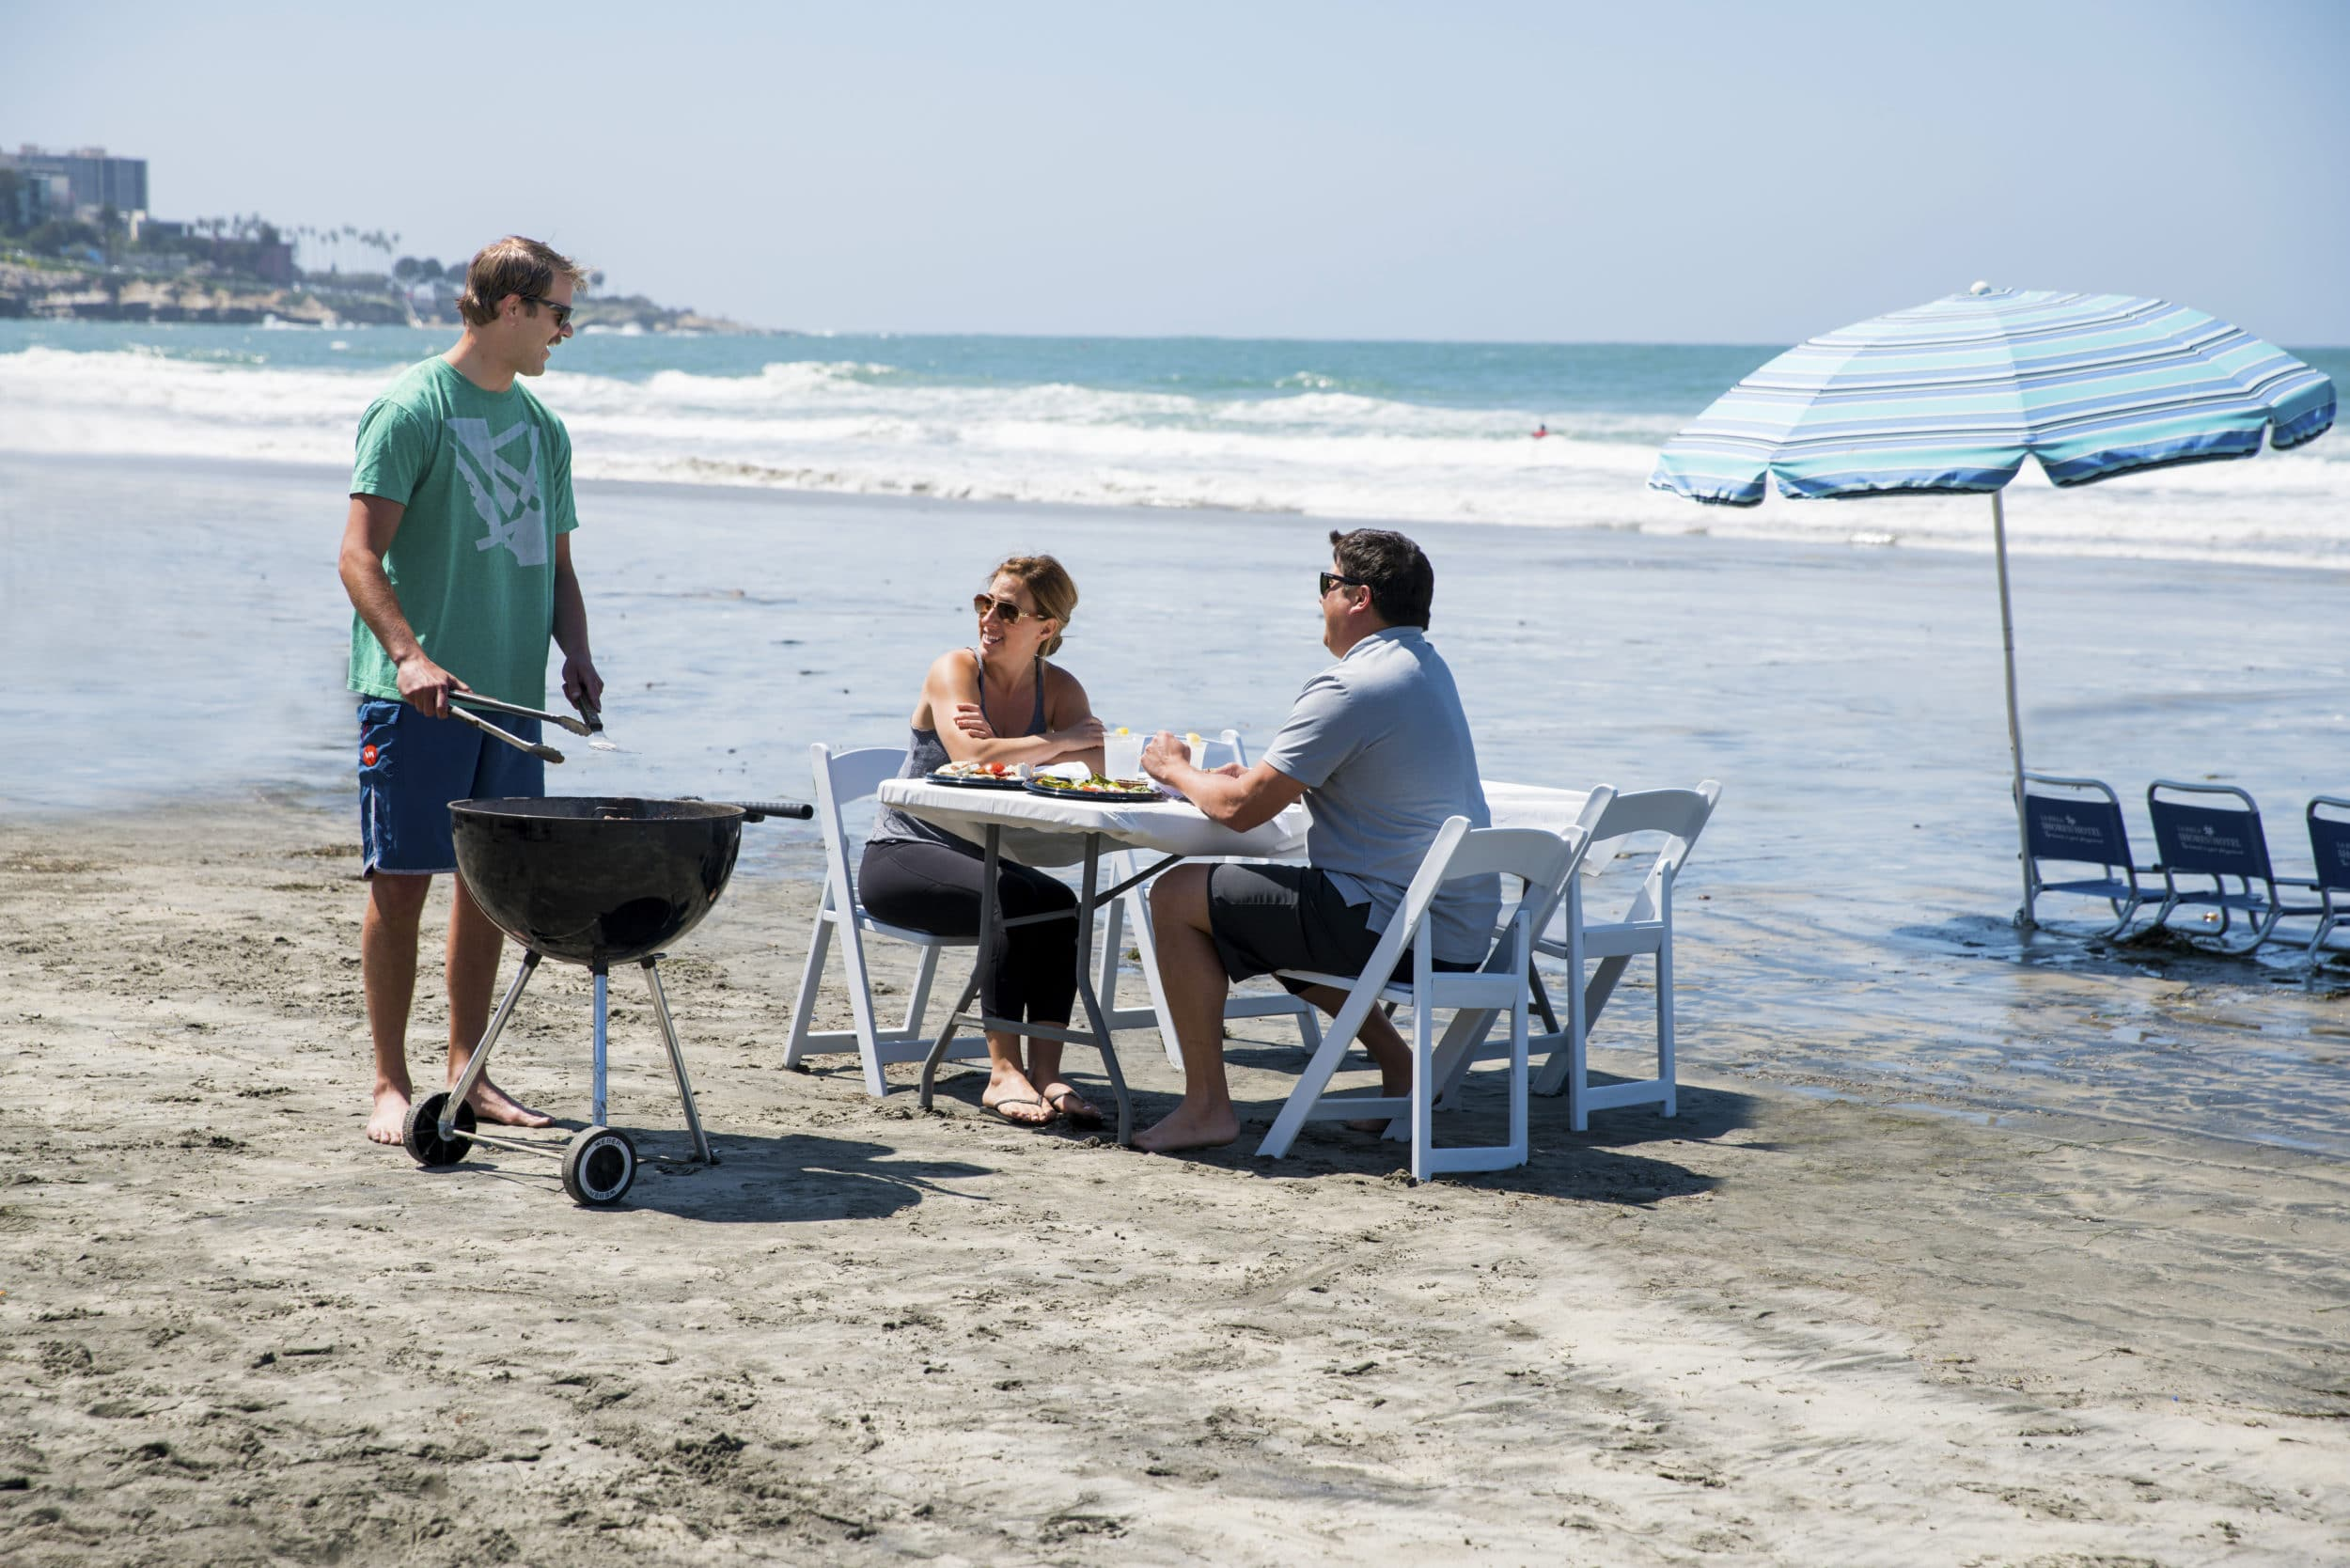 La Jolla Shores Hotel beach barbecues